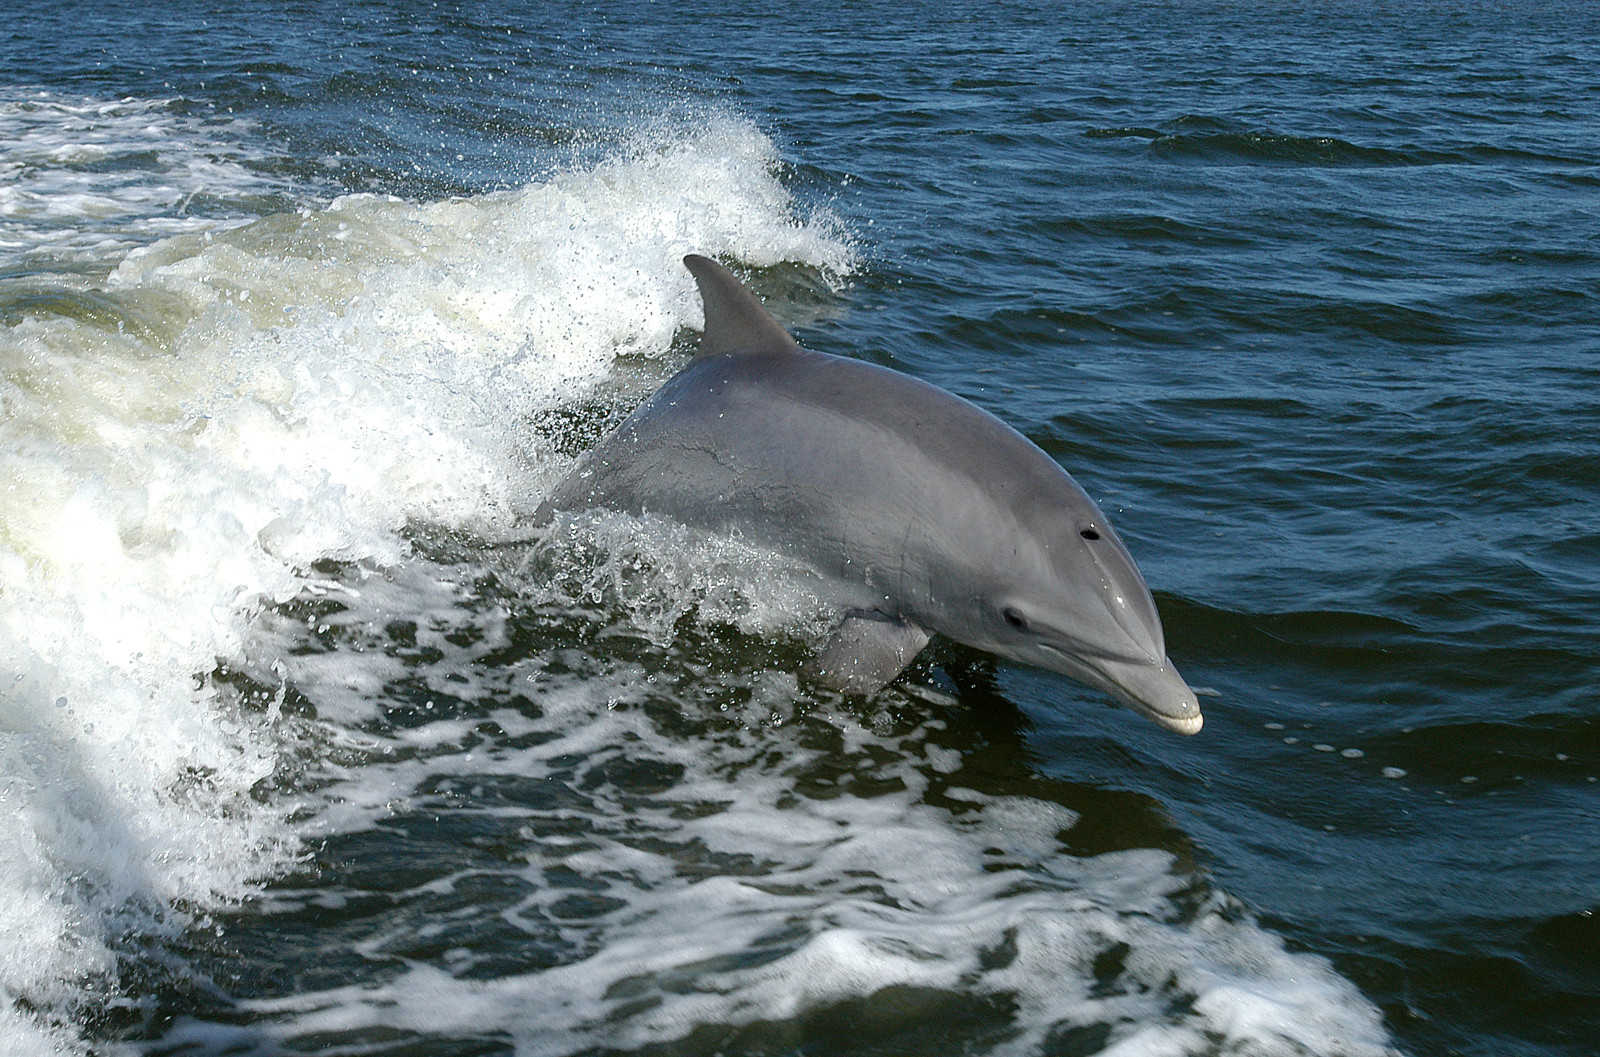 4 Reasons Dolphins deserve to swim free, not suffer in hunts or aquariums